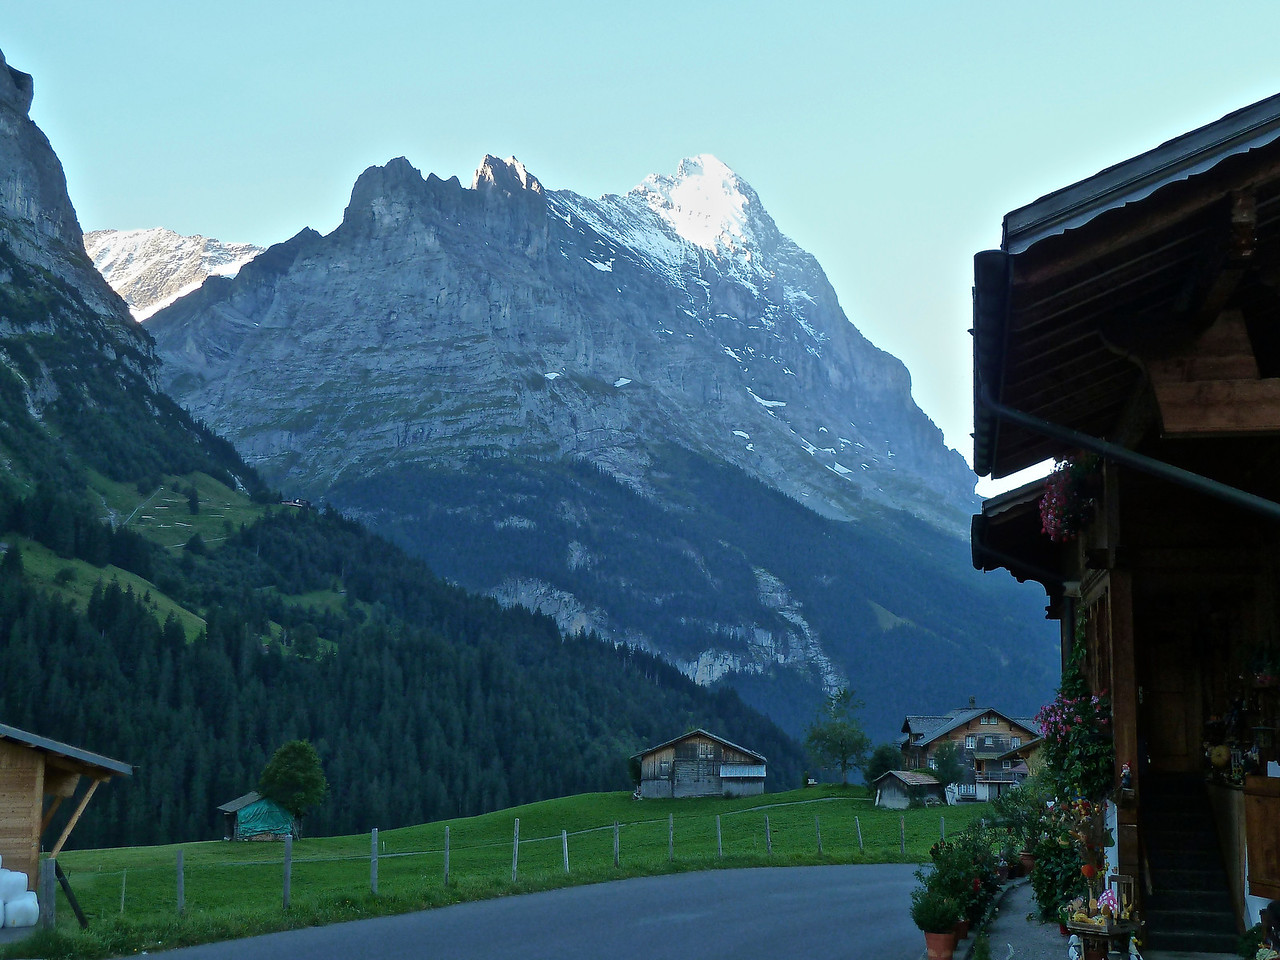 There's the Eiger again.